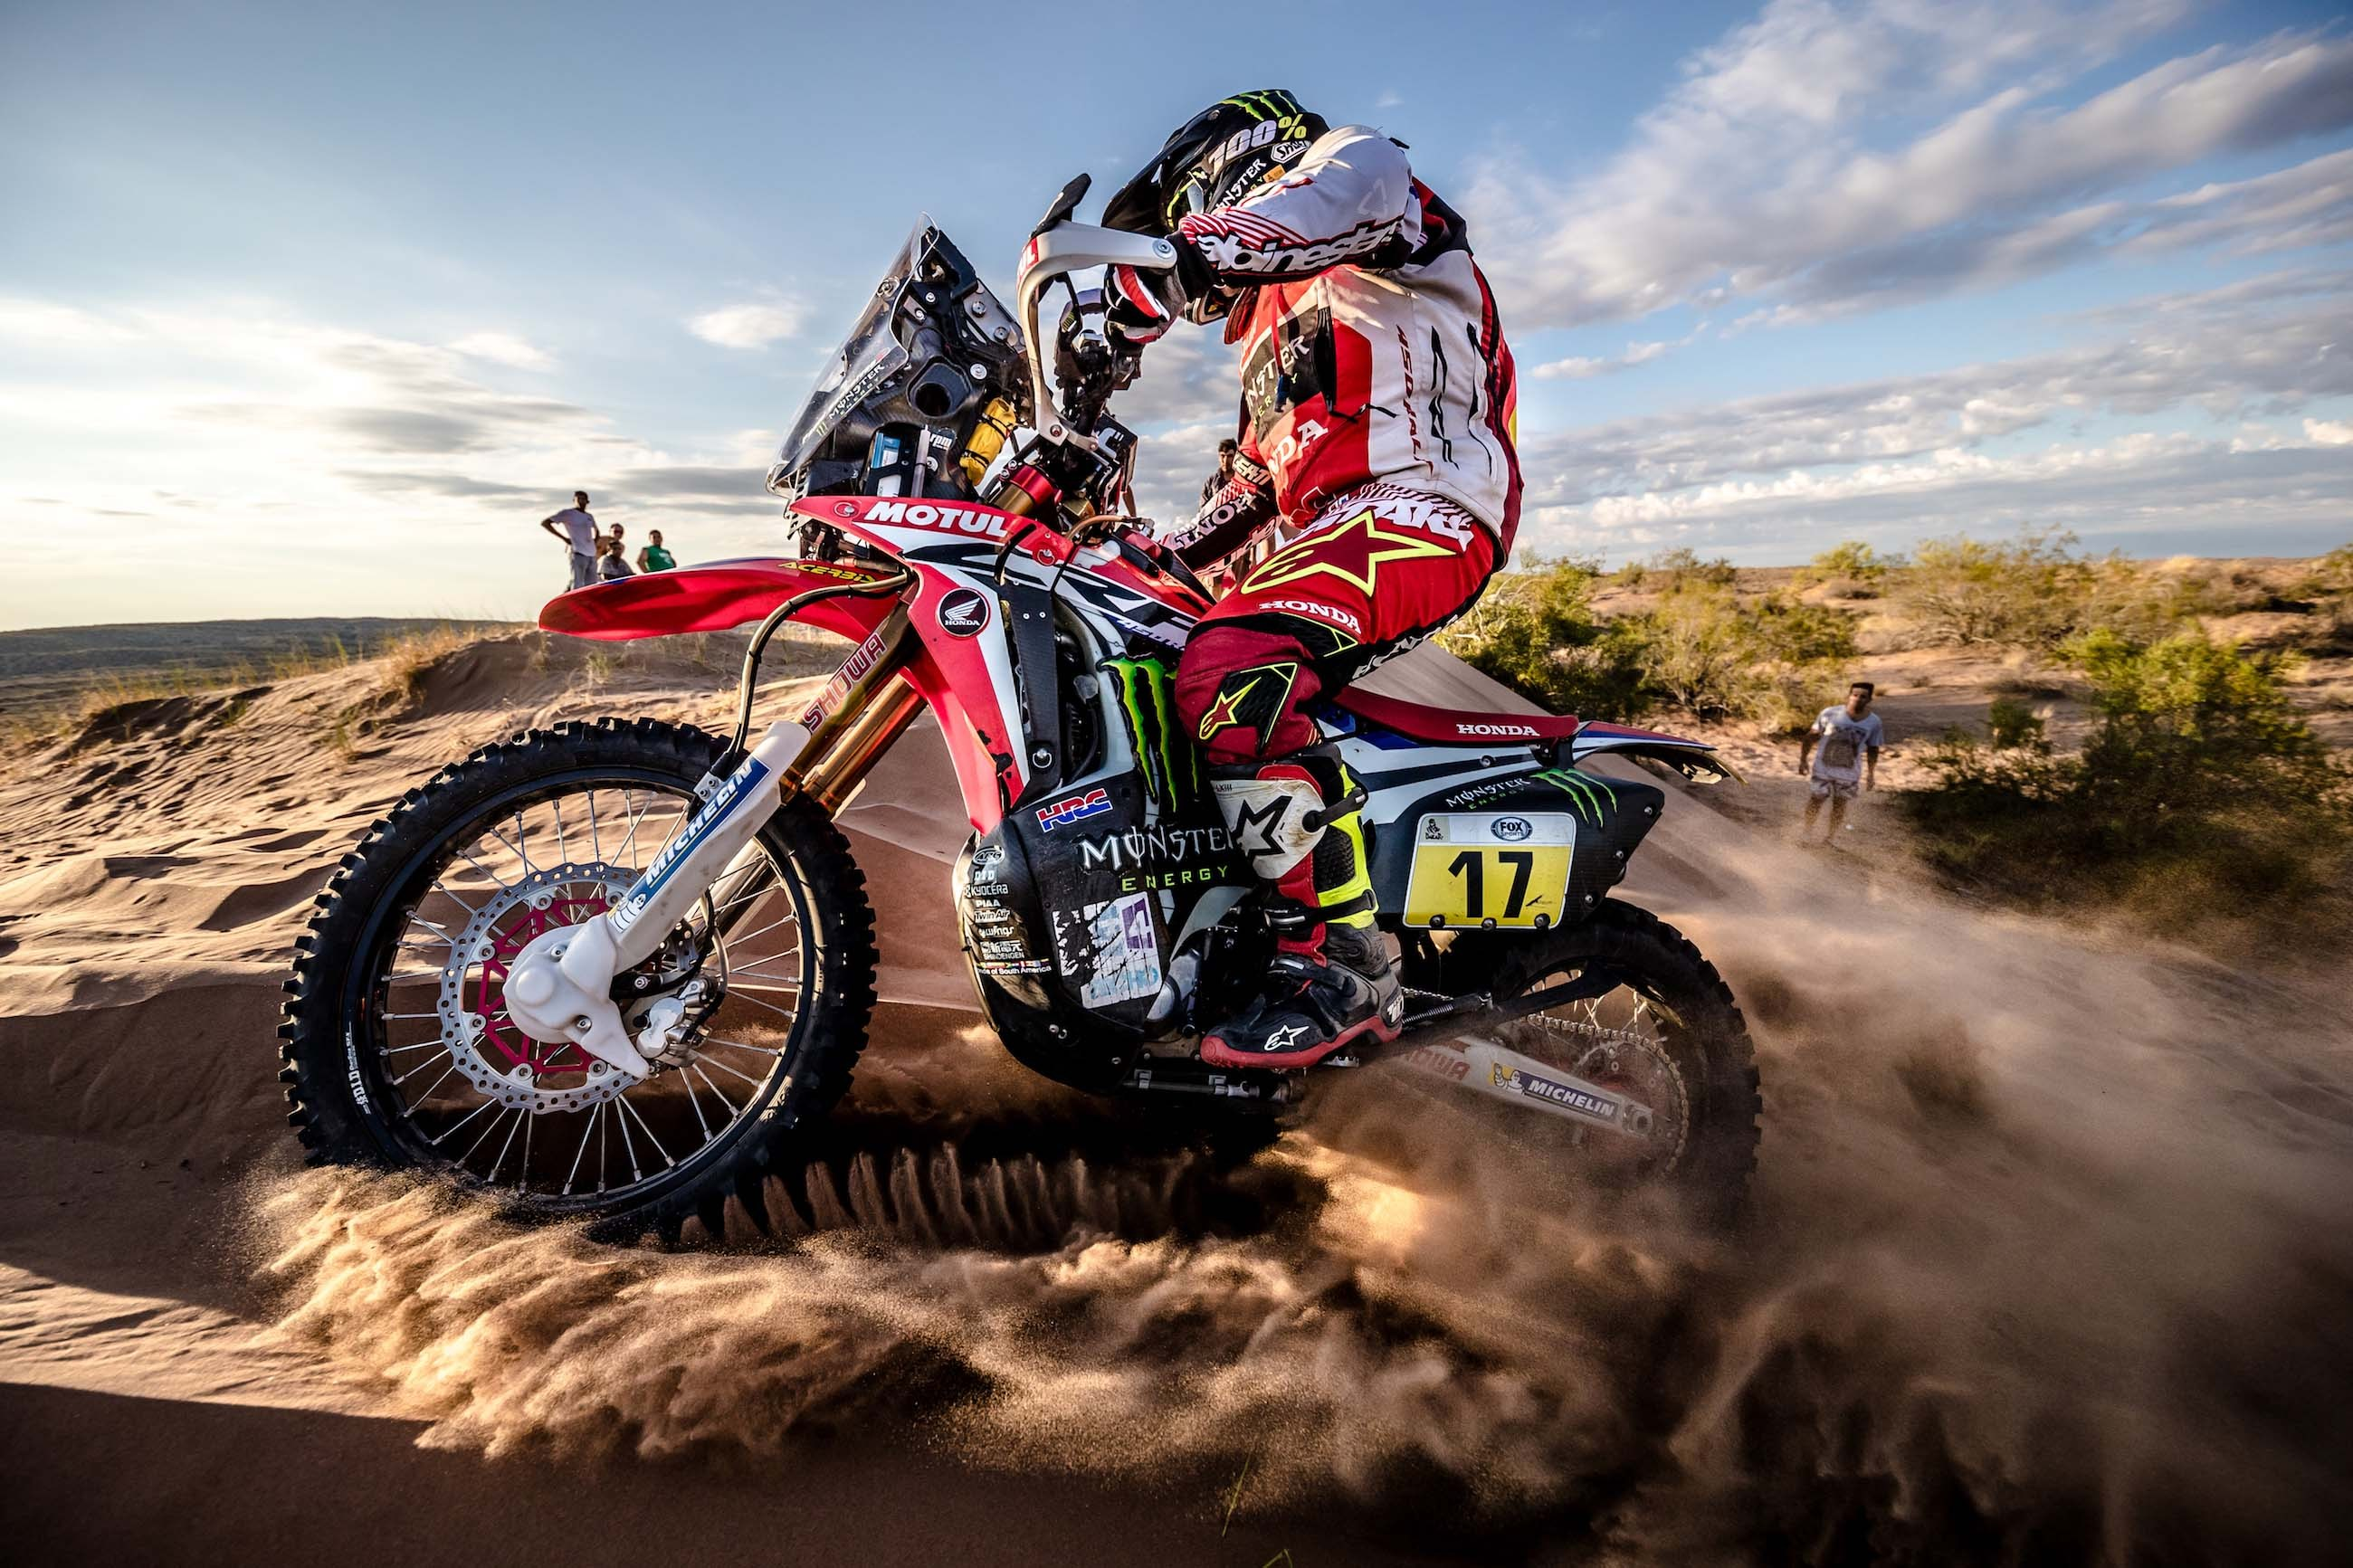 2017 Dakar Rally Stage 12 Honda 09